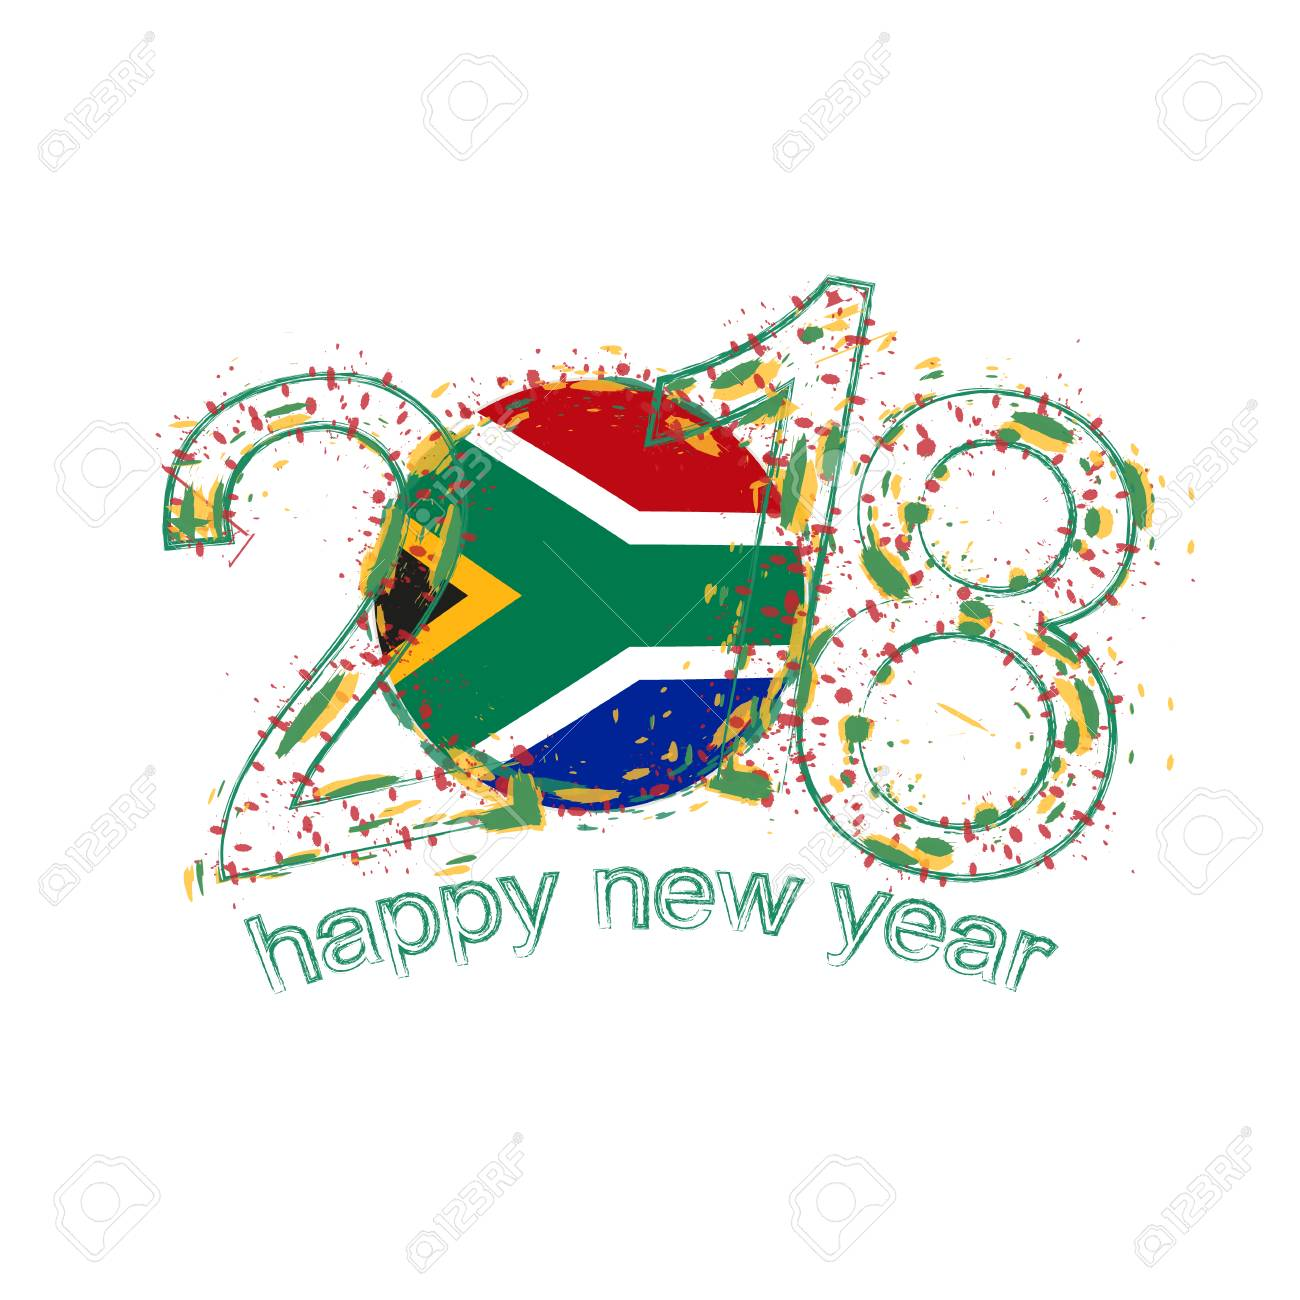 2018 happy new year south africa grunge vector template for greeting 2018 happy new year south africa grunge vector template for greeting card calendars 2018 m4hsunfo